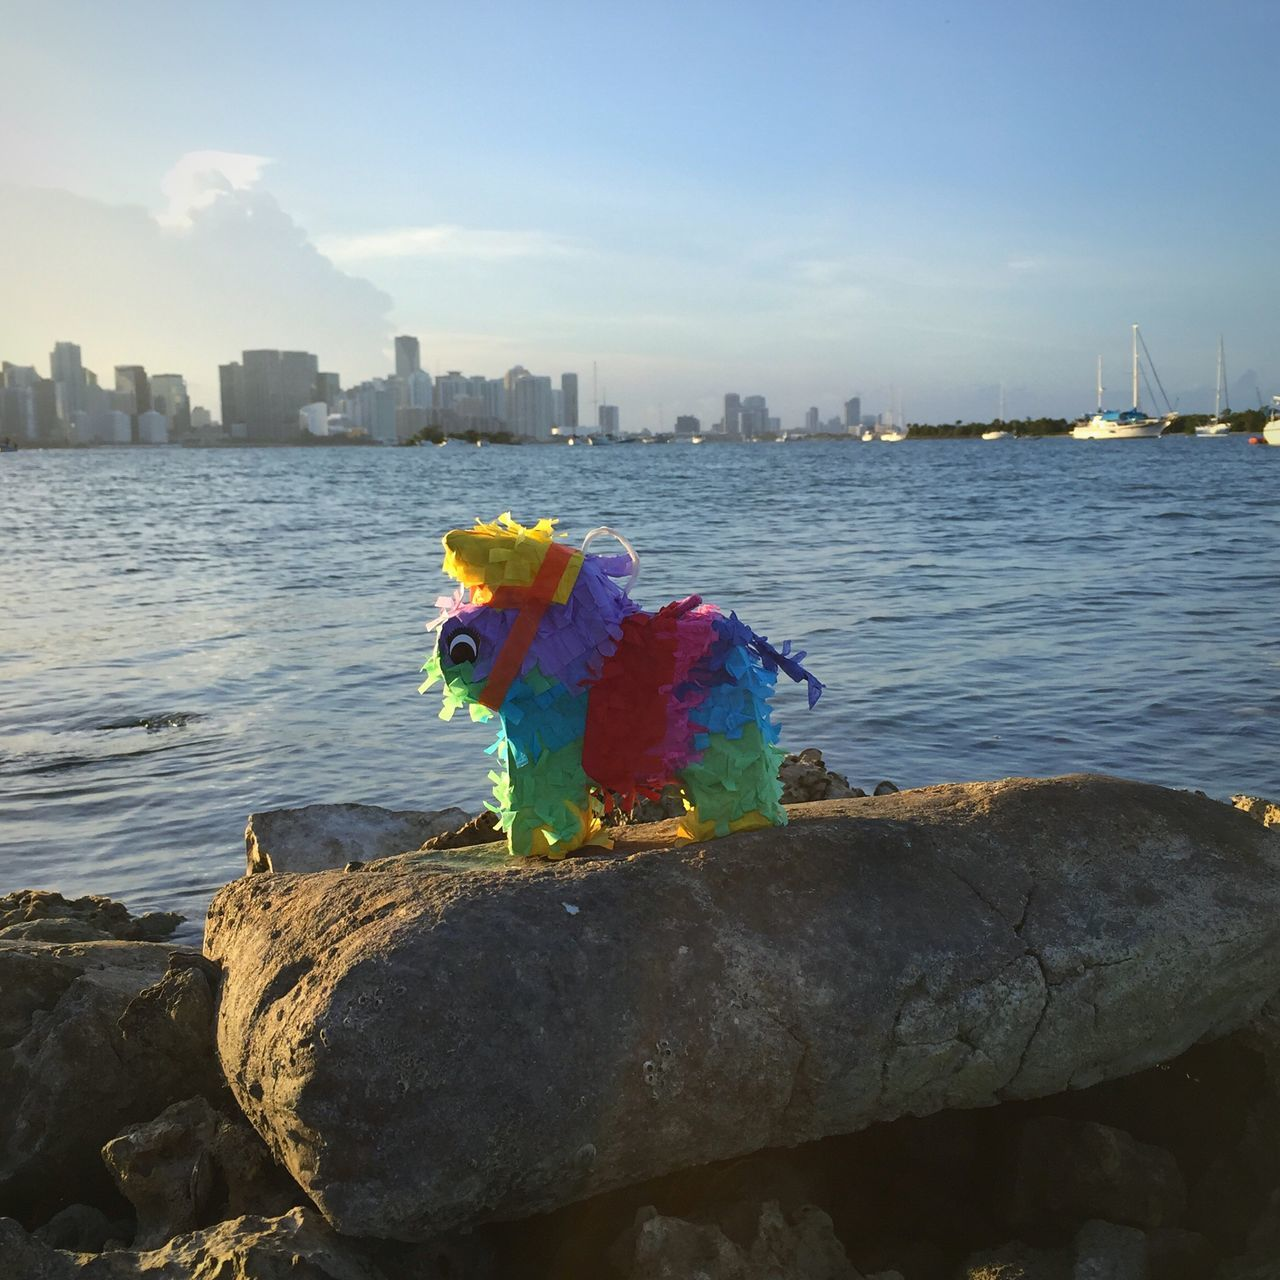 Piñata Celebration Birthday Weekend Weekend Activities Miami South Florida Ocean View Tropical Cityscapes City Life City Landscape Breathe